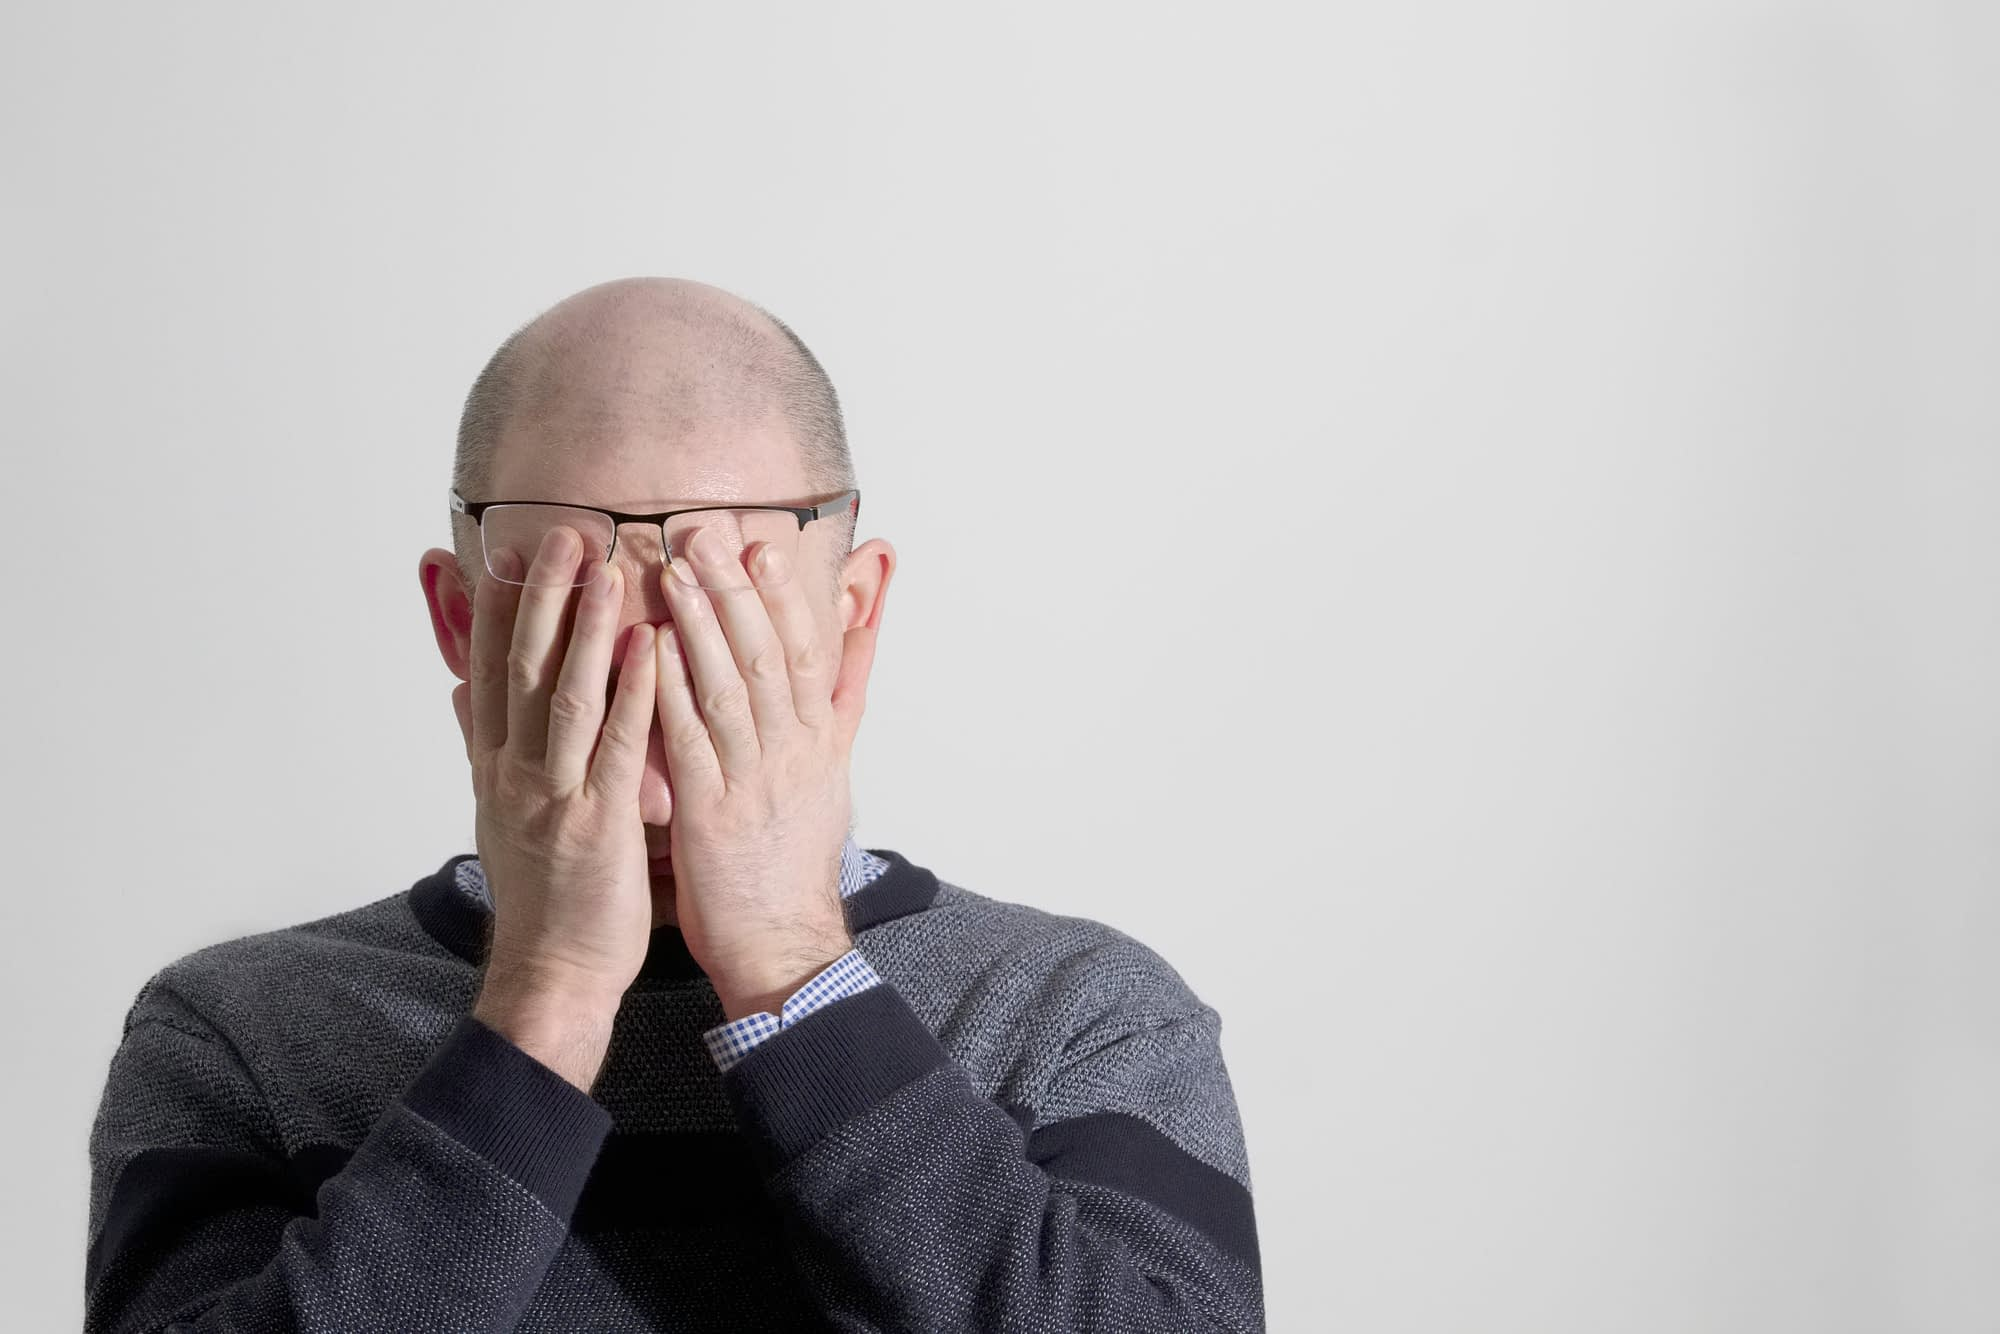 bald guy stressed out